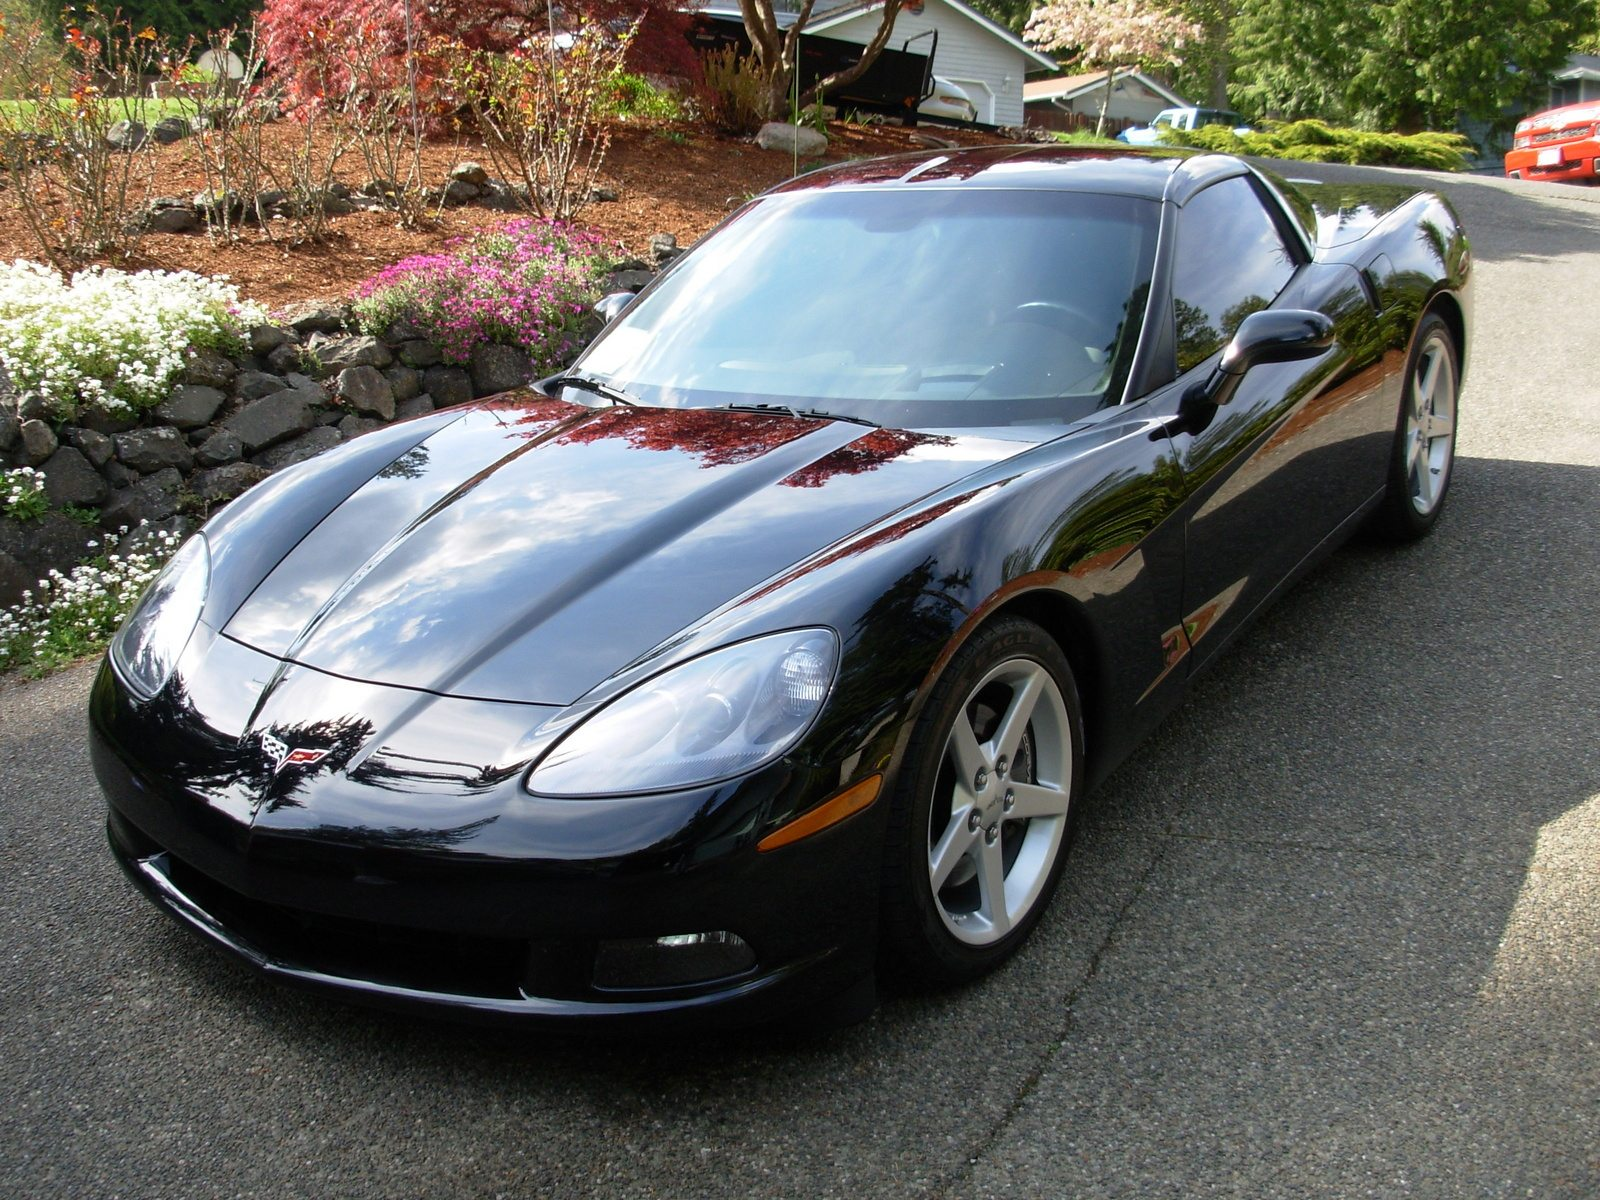 2008 Corvette For Sale >> 2005 C6 Corvette | Image Gallery & Pictures